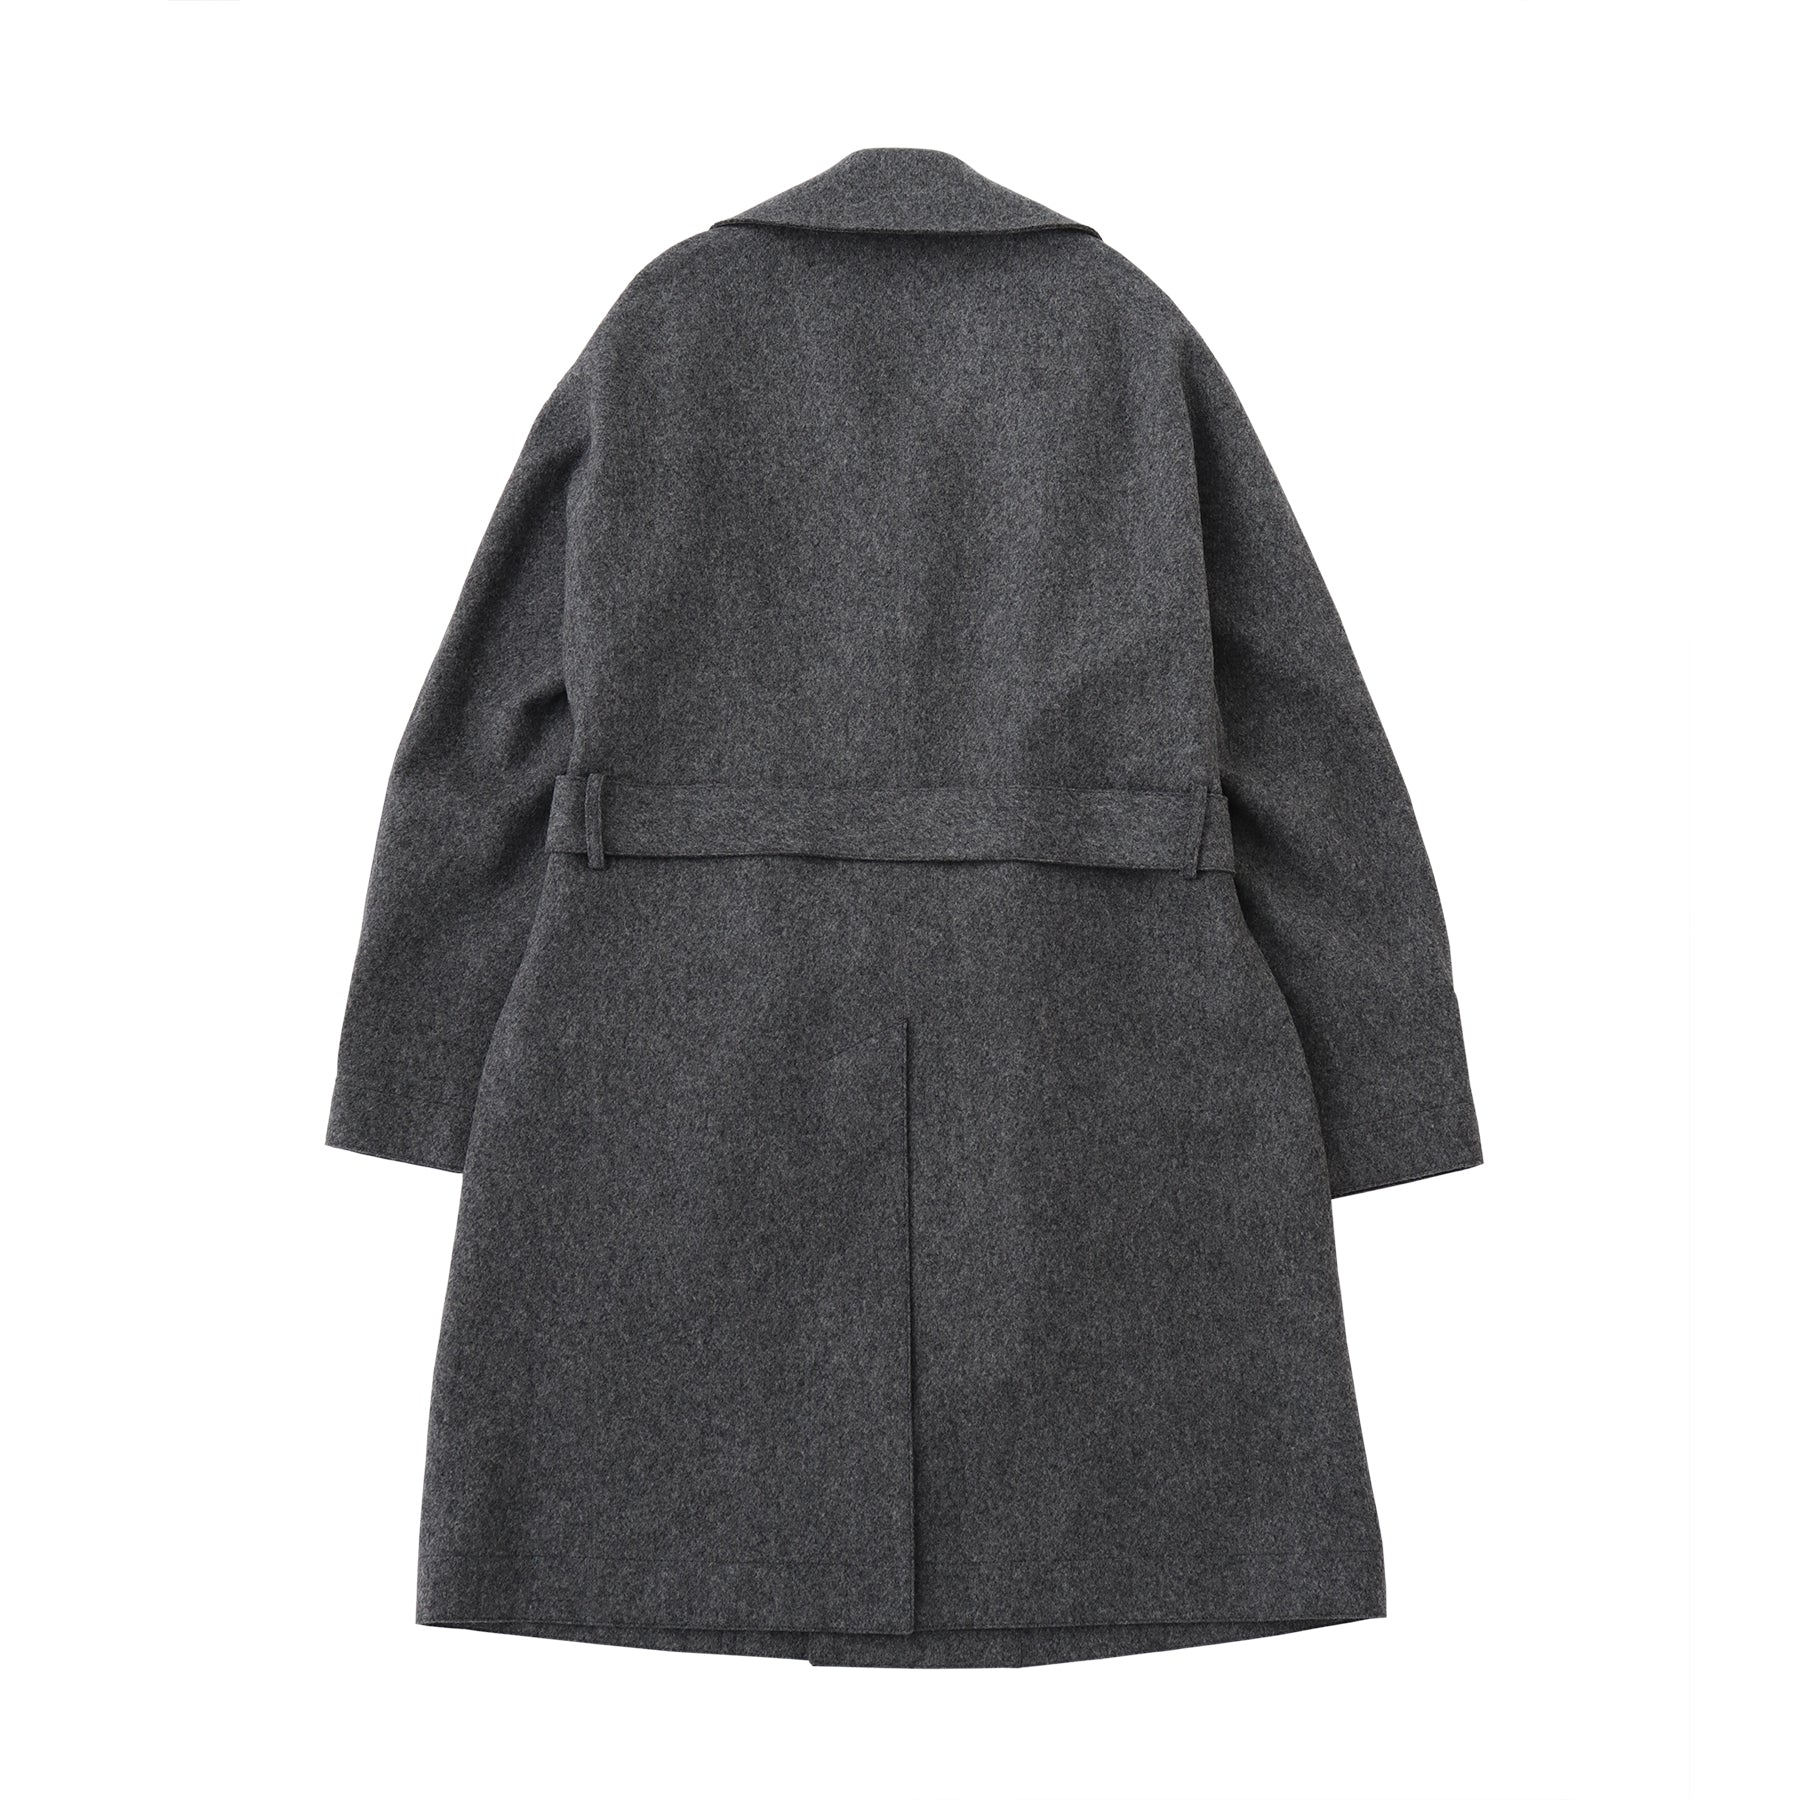 TPS_Single Belted Coat<br>Gray